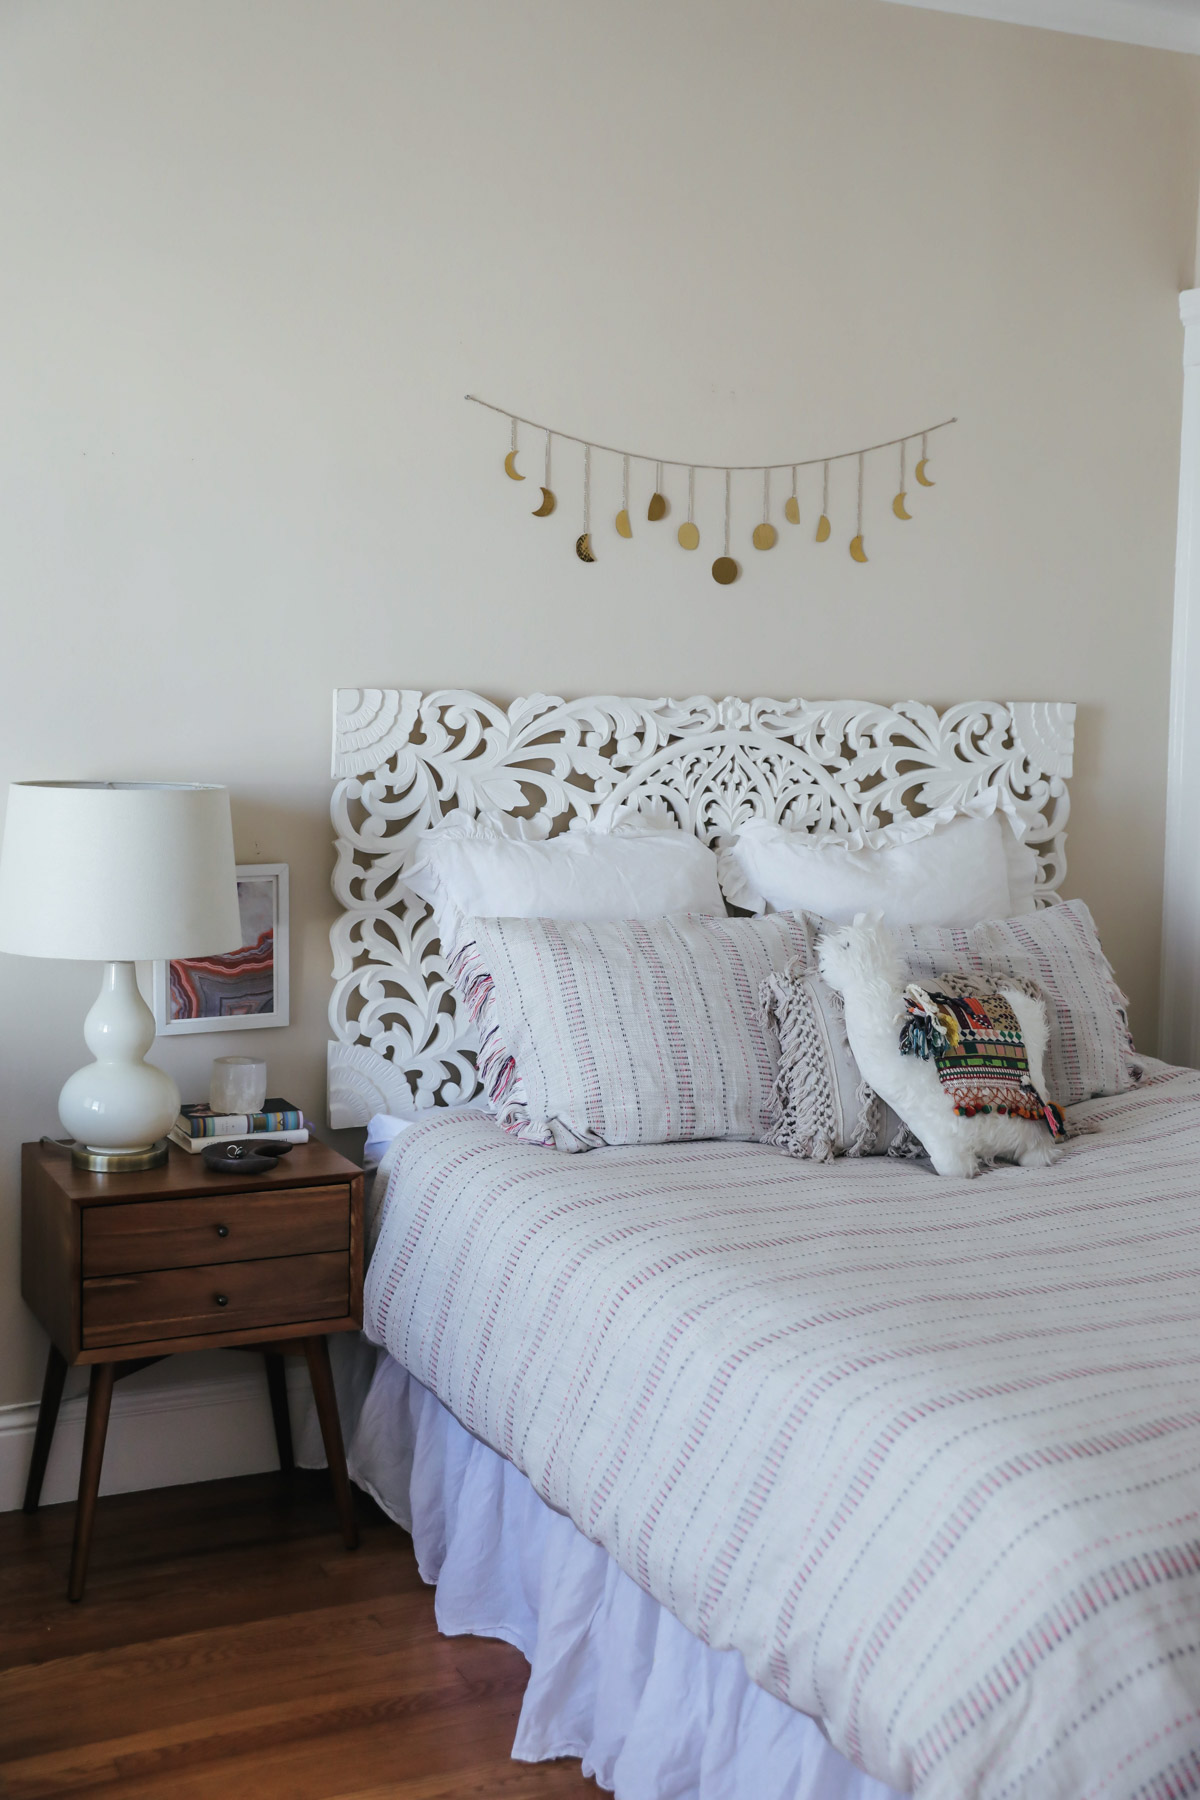 This Floral One Is Of My Faves Im Especially Obsessed With Their Textured Duvets Like Fringe Trim Option And Fun Crochet